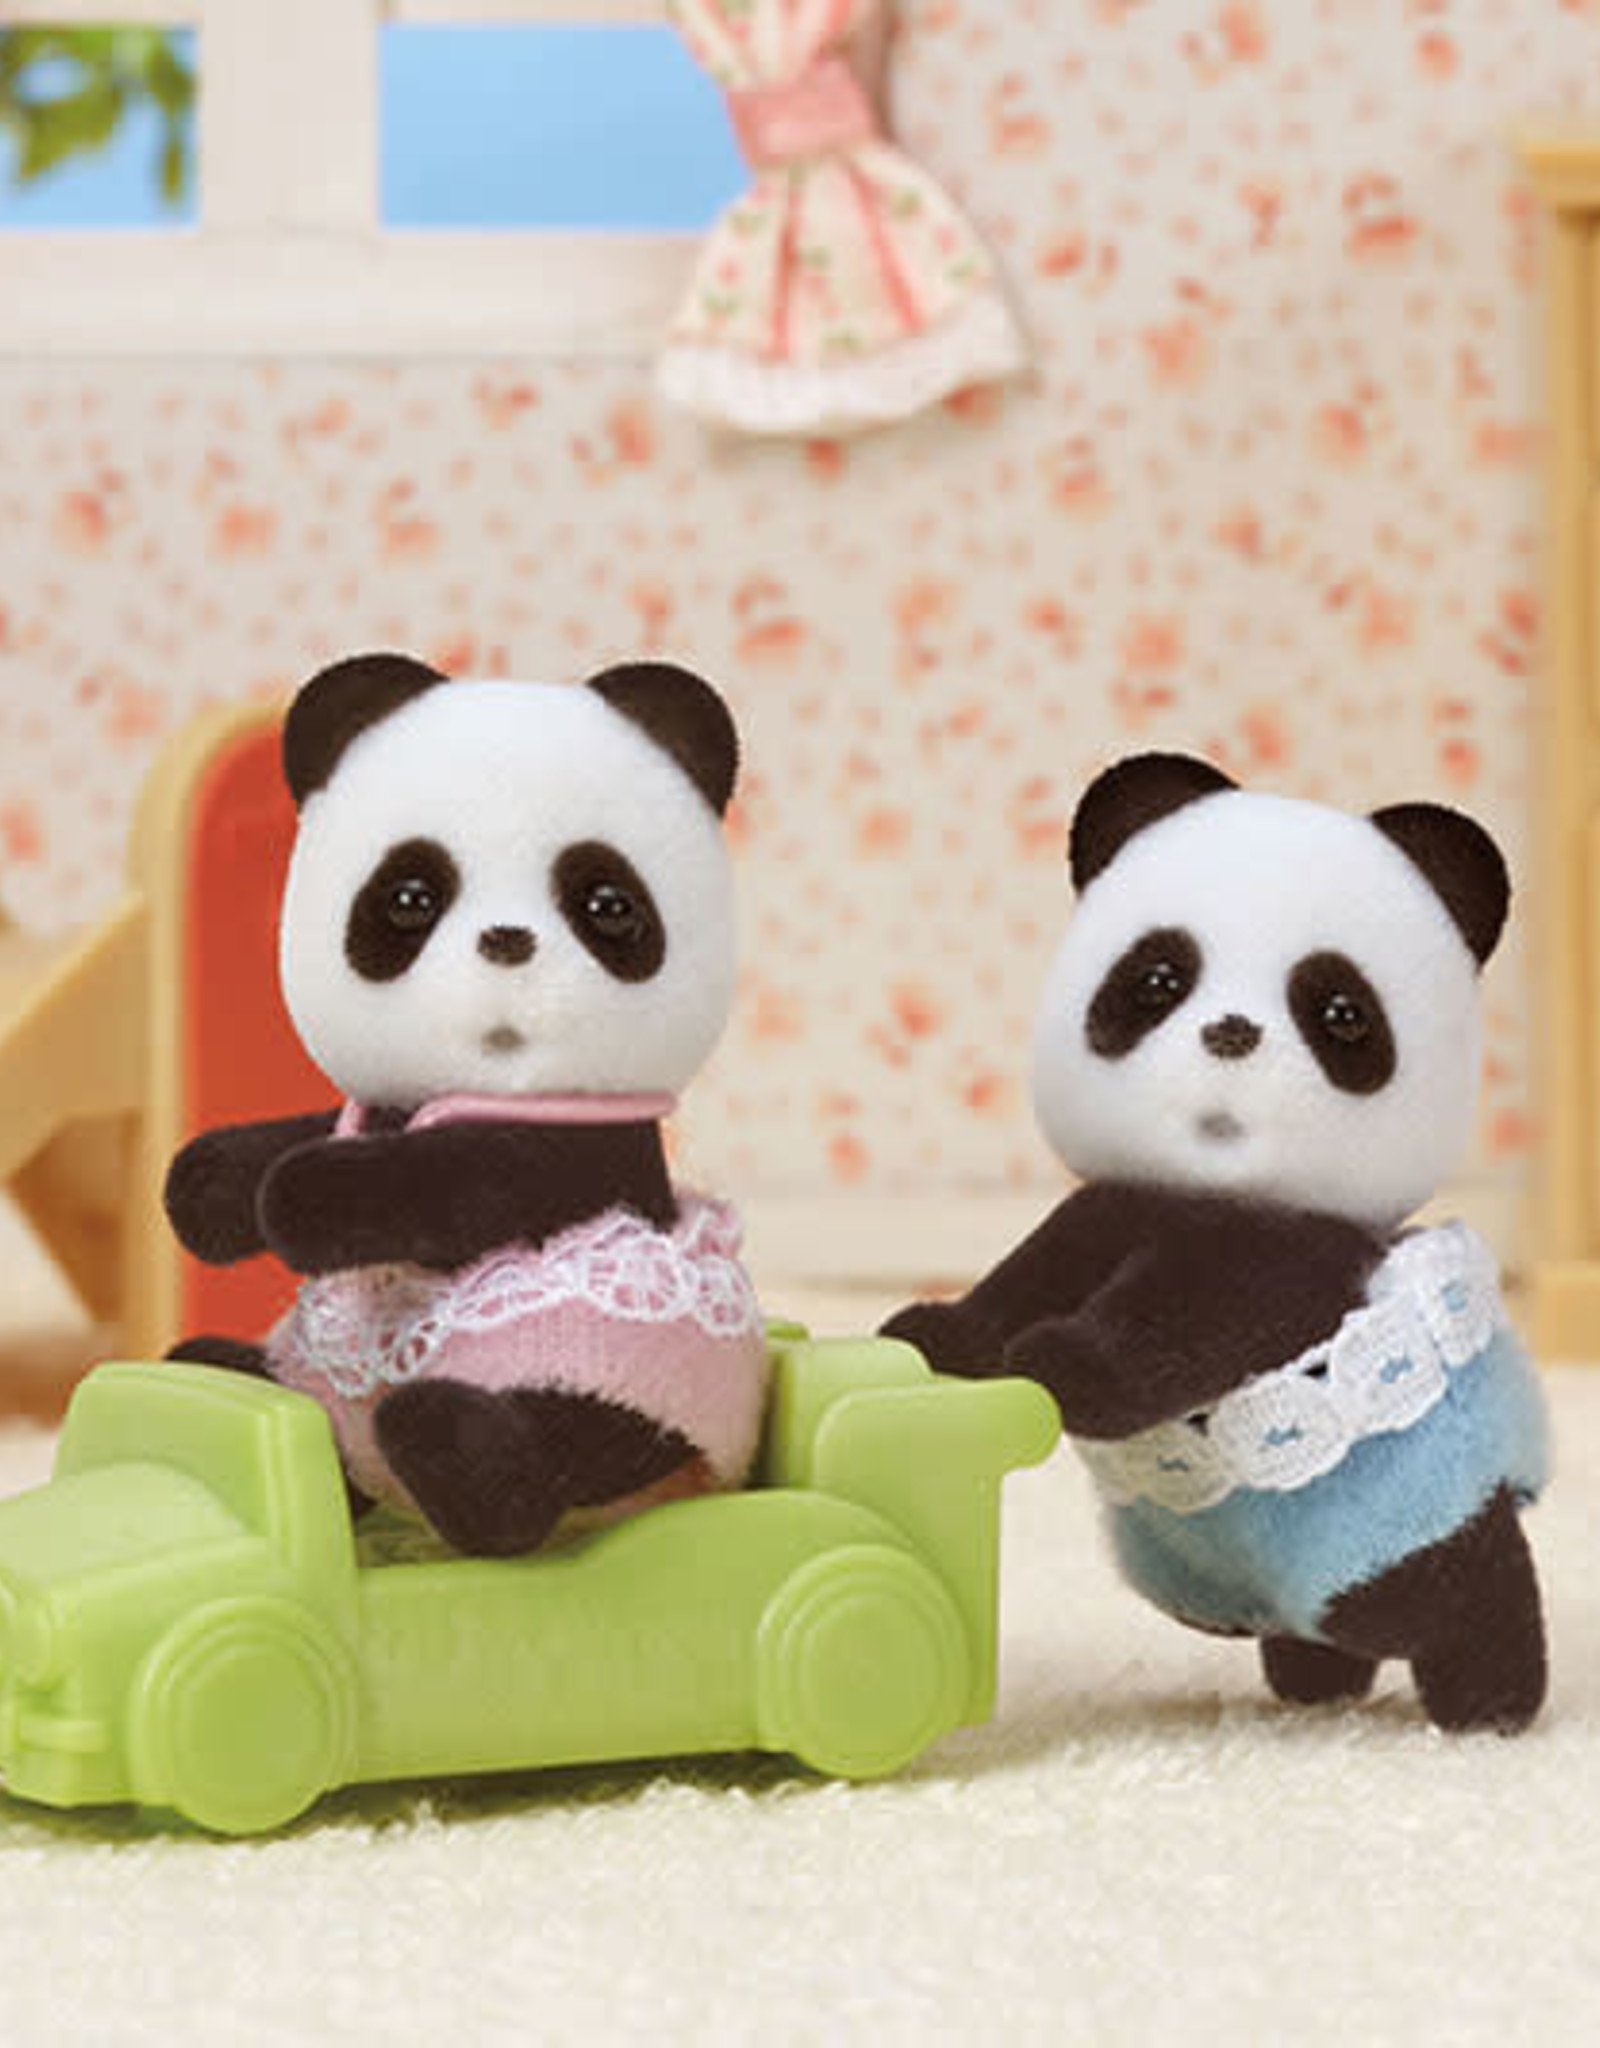 Calico Critters Wilder Panda Twins